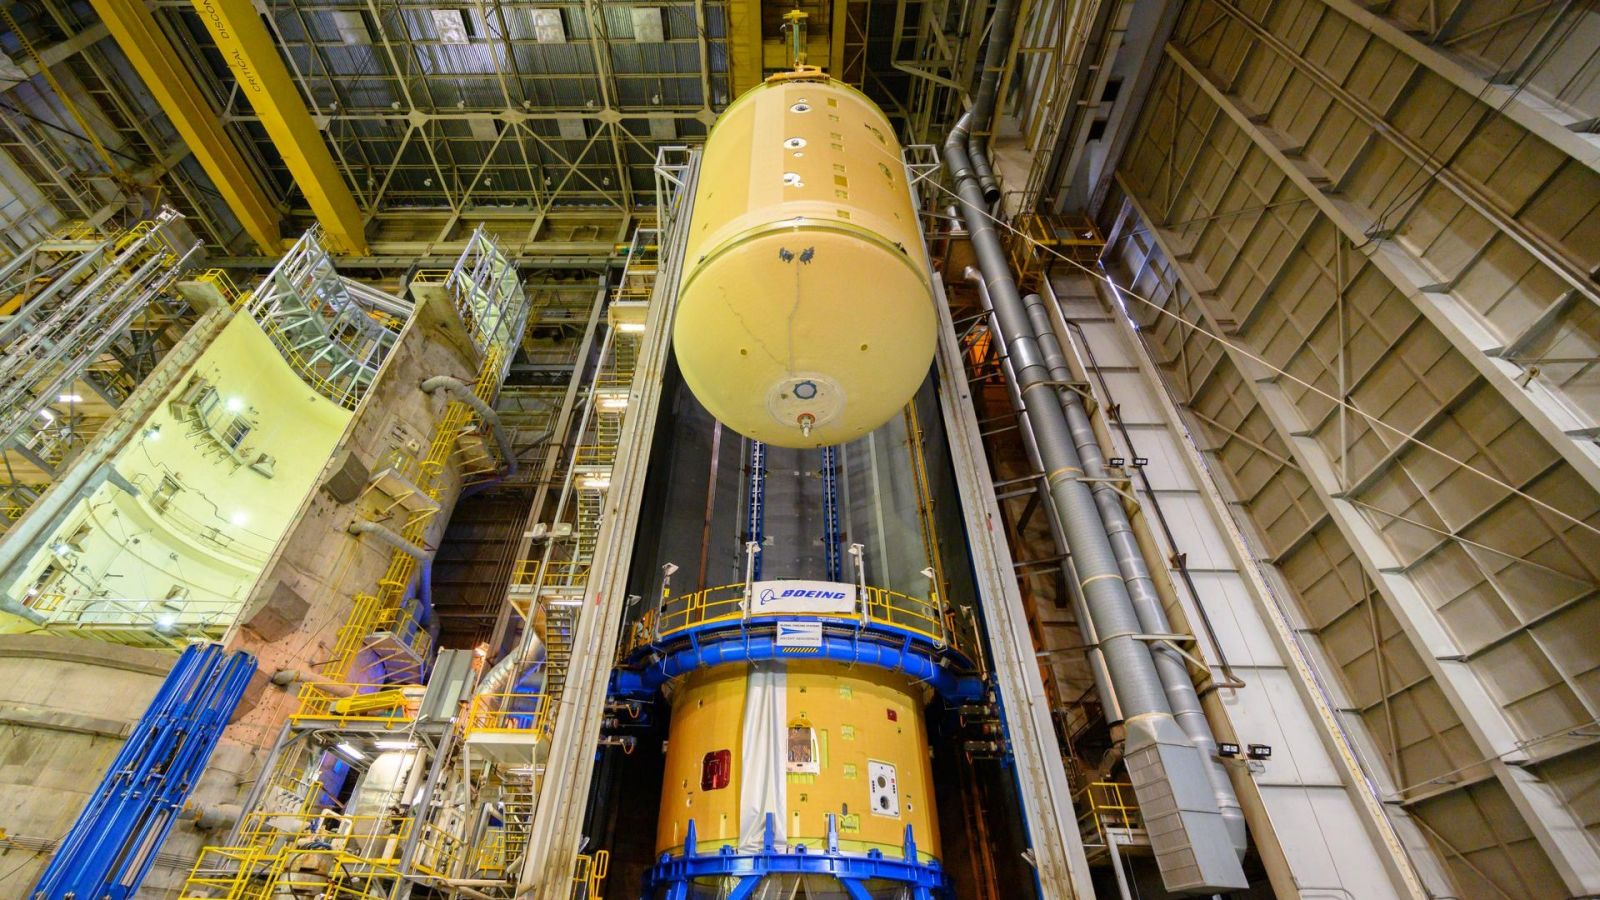 The Artemis 2 Space Launch System core stage liquid oxygen tank is readied for attachment to the interstage at NASA's Michoud Assembly Facility in New Orleans. Credit: NASA